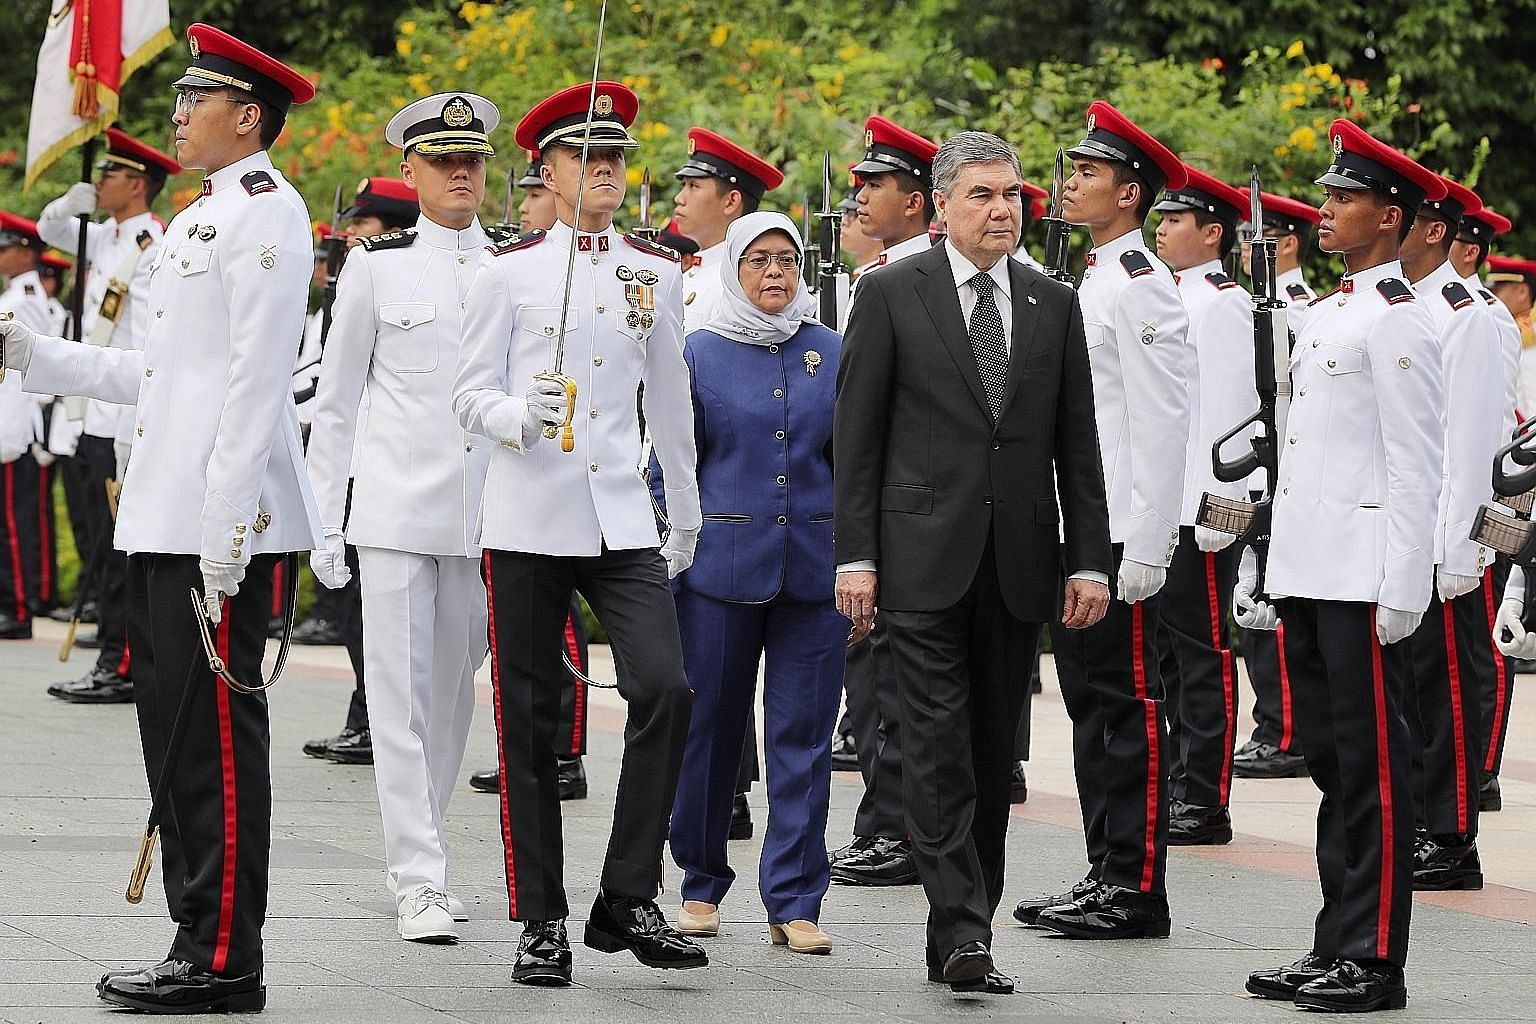 Turkmenistan President Gurbanguly Berdimuhammedow, accompanied by Singapore President Halimah Yacob, reviewing the guard of honour at the Istana yesterday. He left Singapore last night.